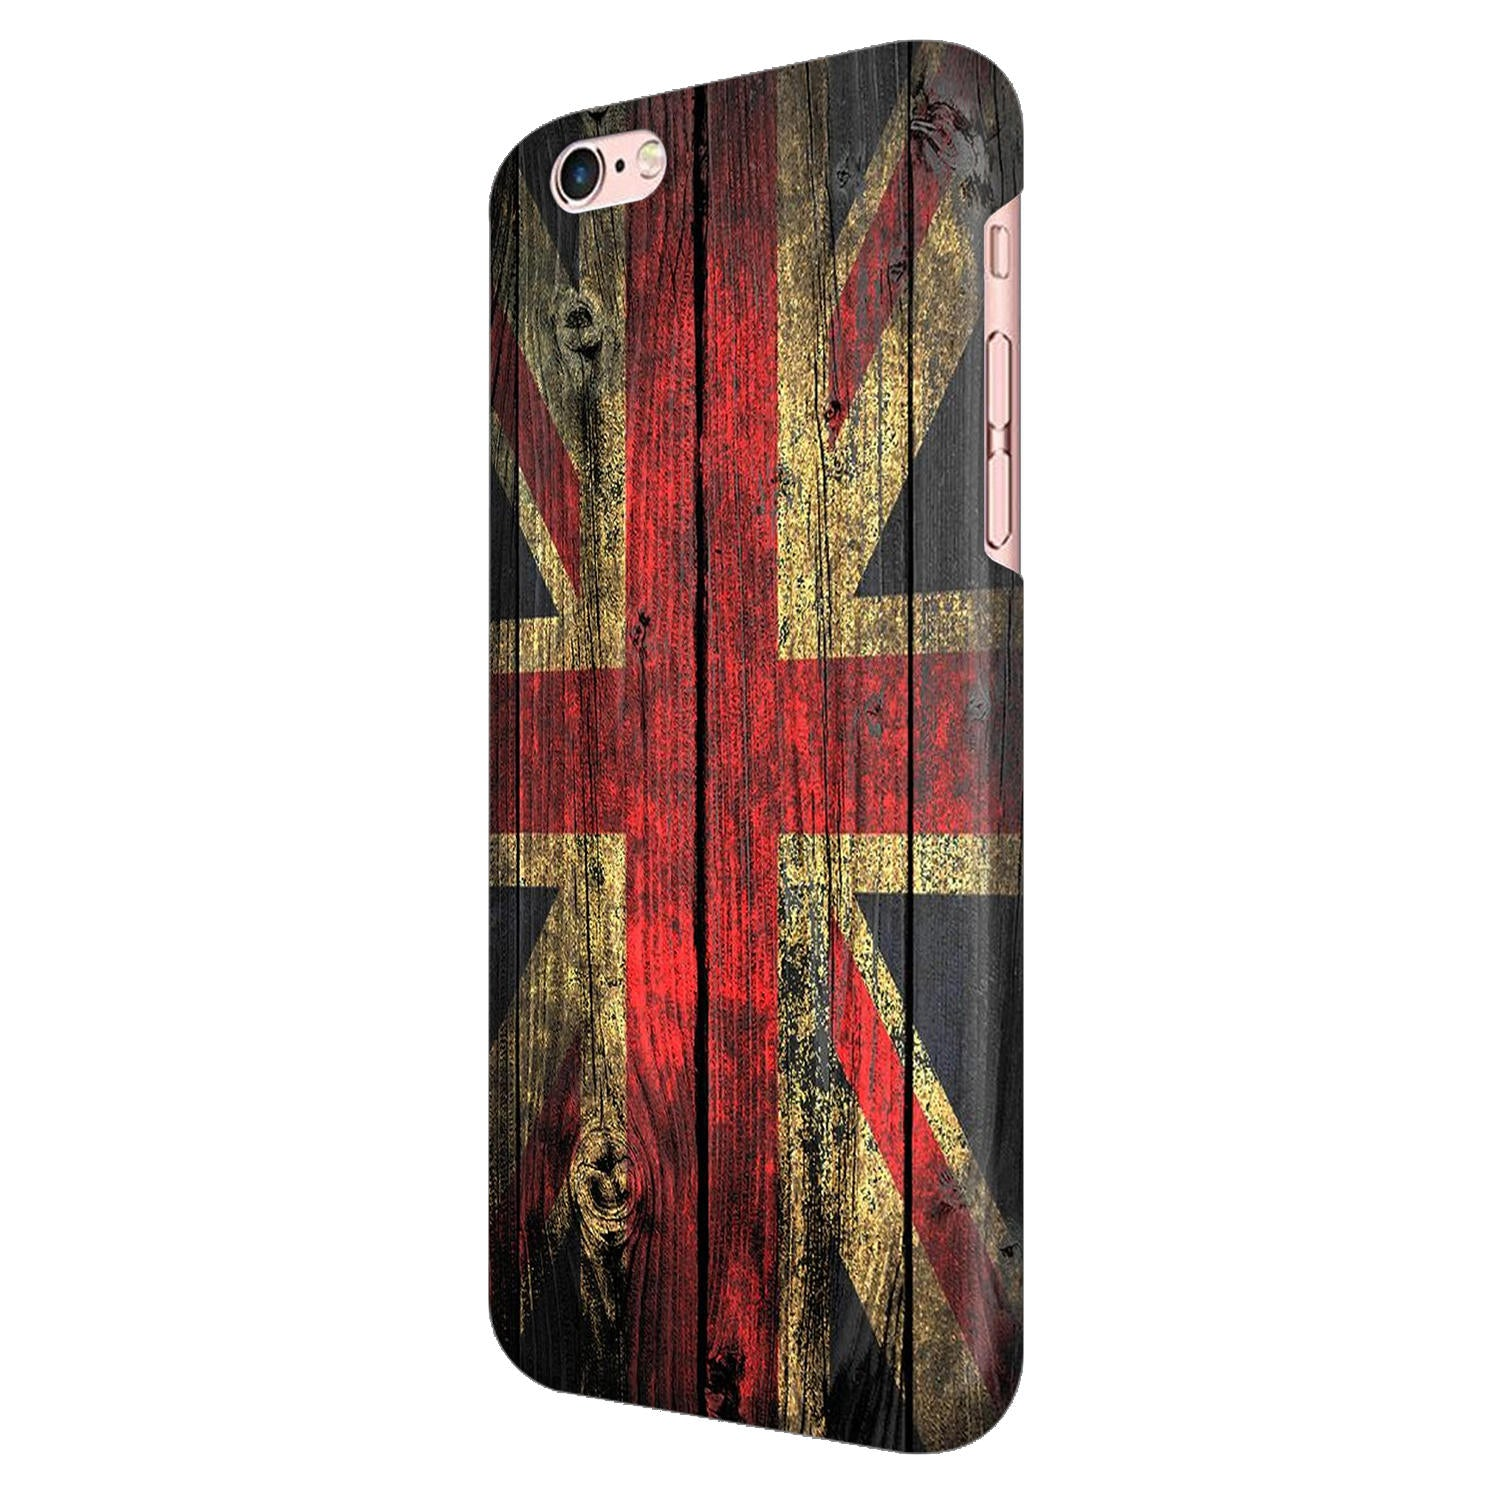 Union Jack iPhone 6 Mobile Cover Case - MADANYU